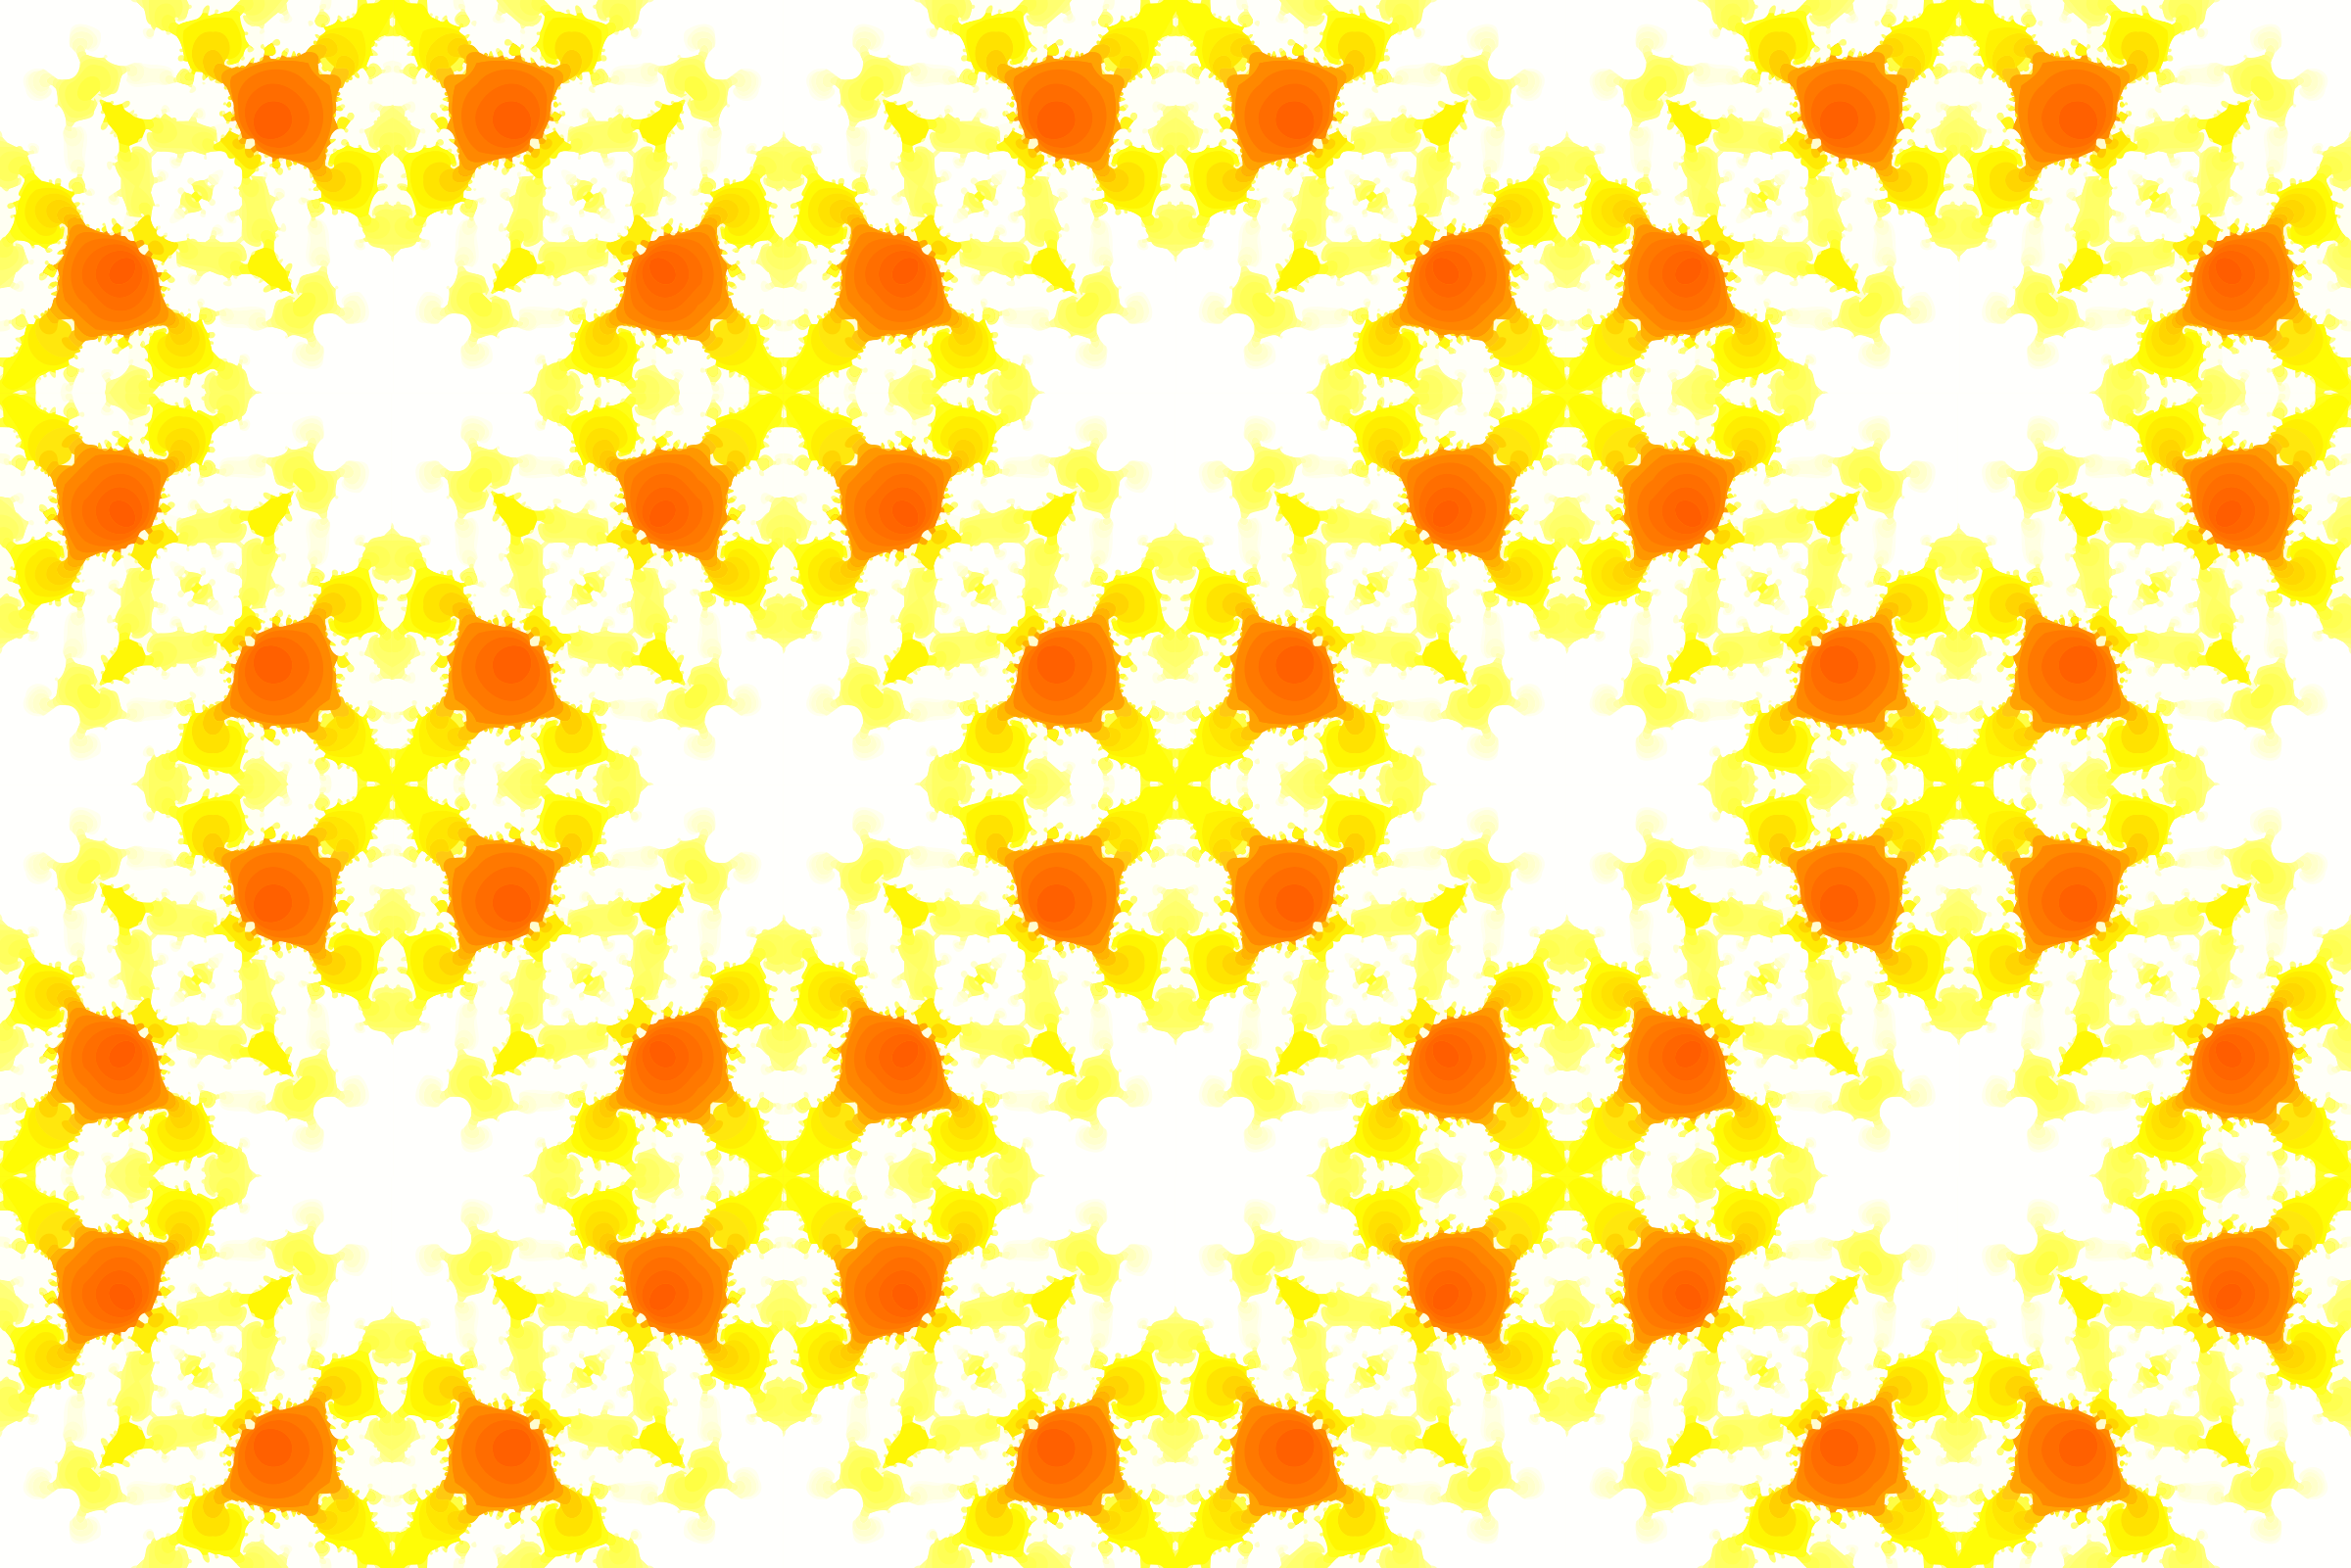 Background pattern 150 by Firkin